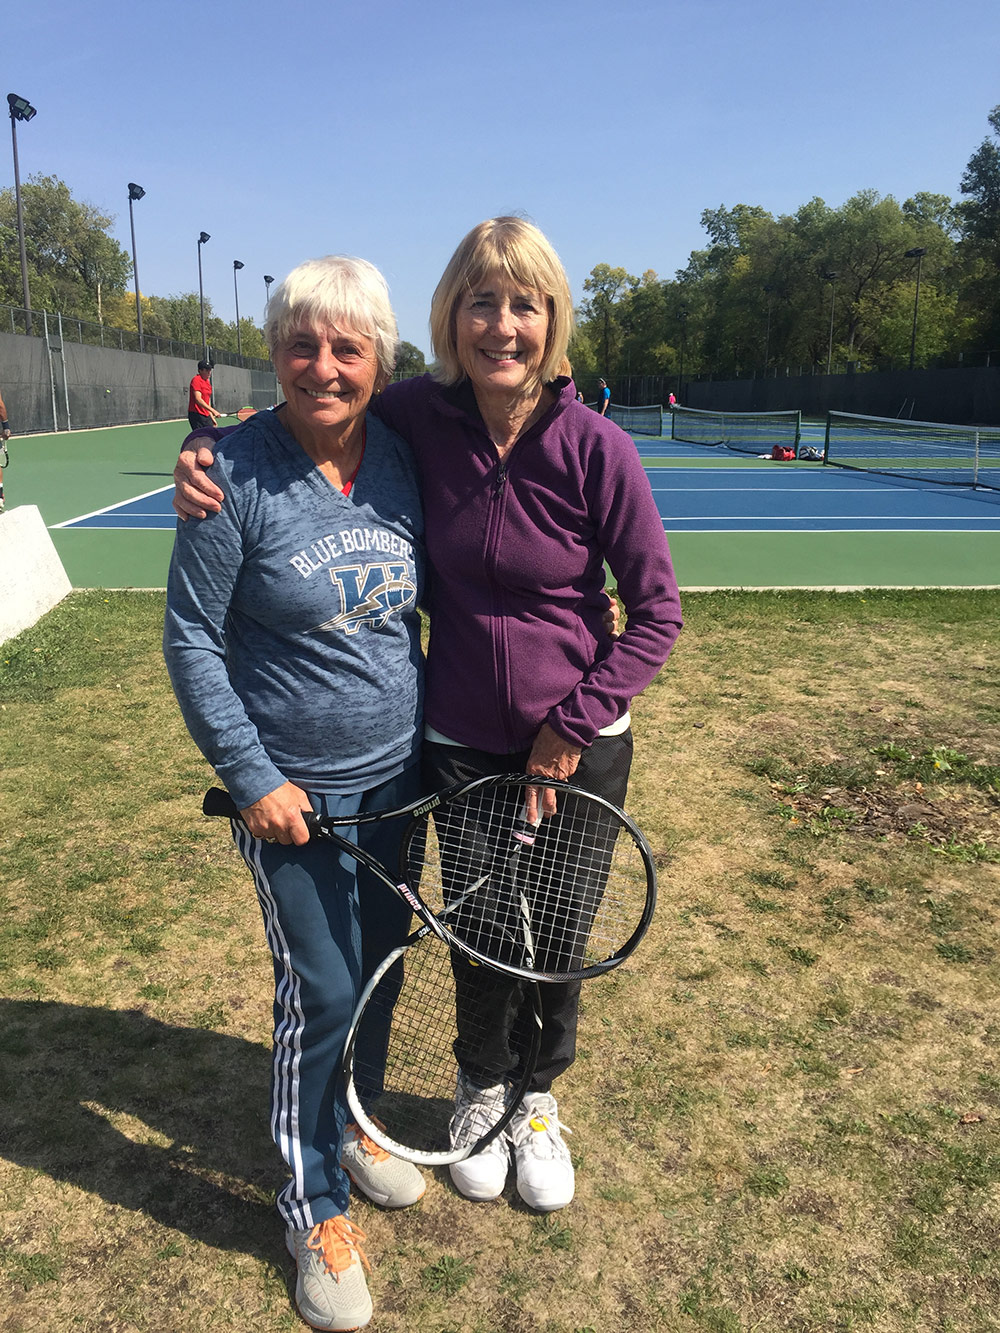 Marilyn Redekop and Margaret Boumford - Women's 65+ doubles winners